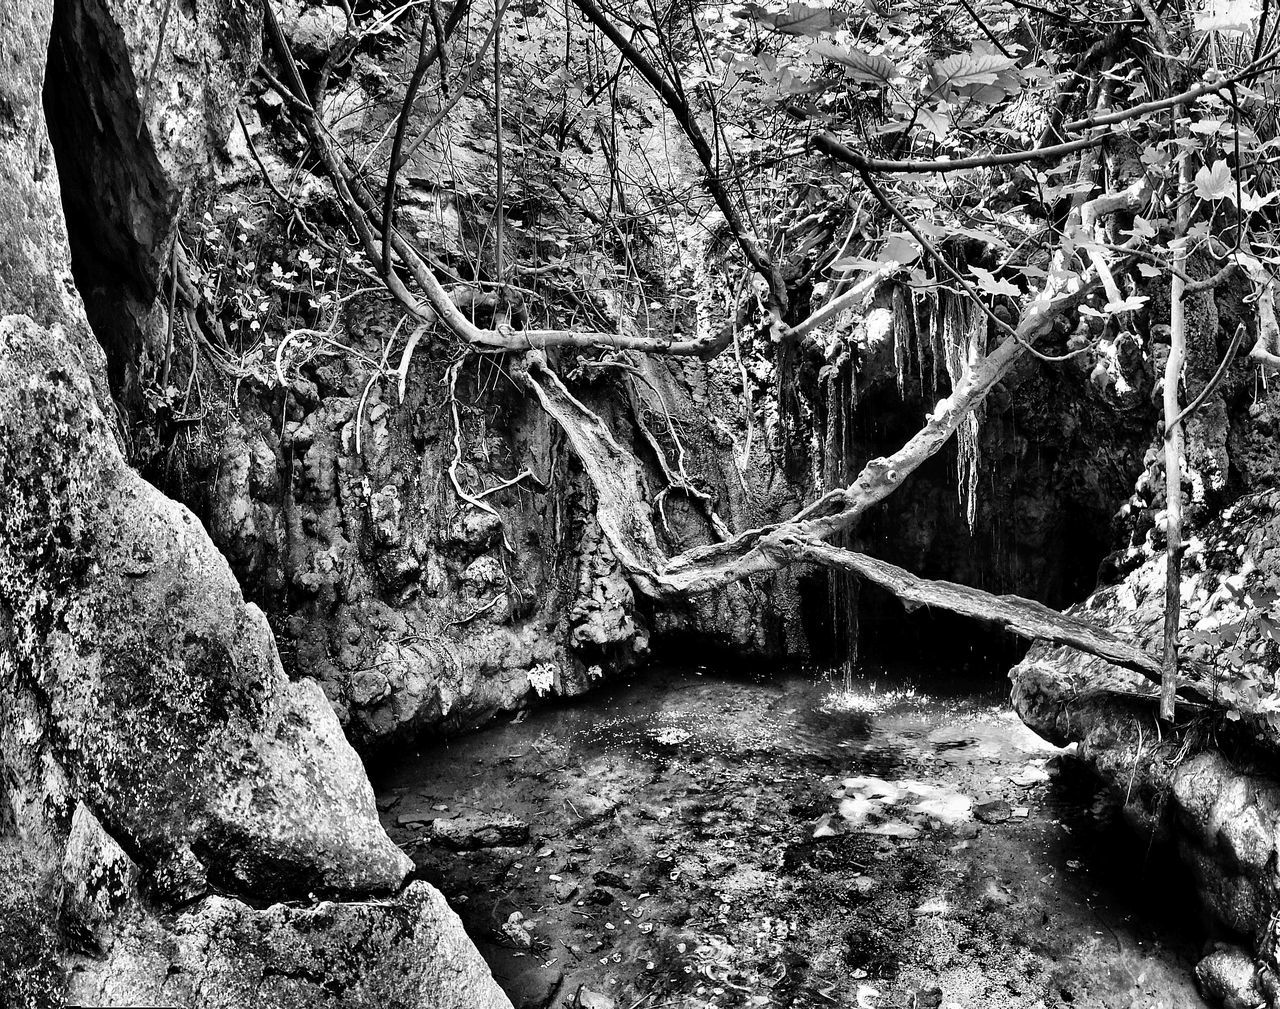 Aphroditie's Baths Aphroditie's Spring Beauty In Nature Branch Cyprus Day Forest Growth Lachi Cyprus Moss Nature No People Outdoors Rock - Object Rock Formation Rough Scenics Textured  Tranquil Scene Tranquility Tree Tree Trunk Water Wood - Material